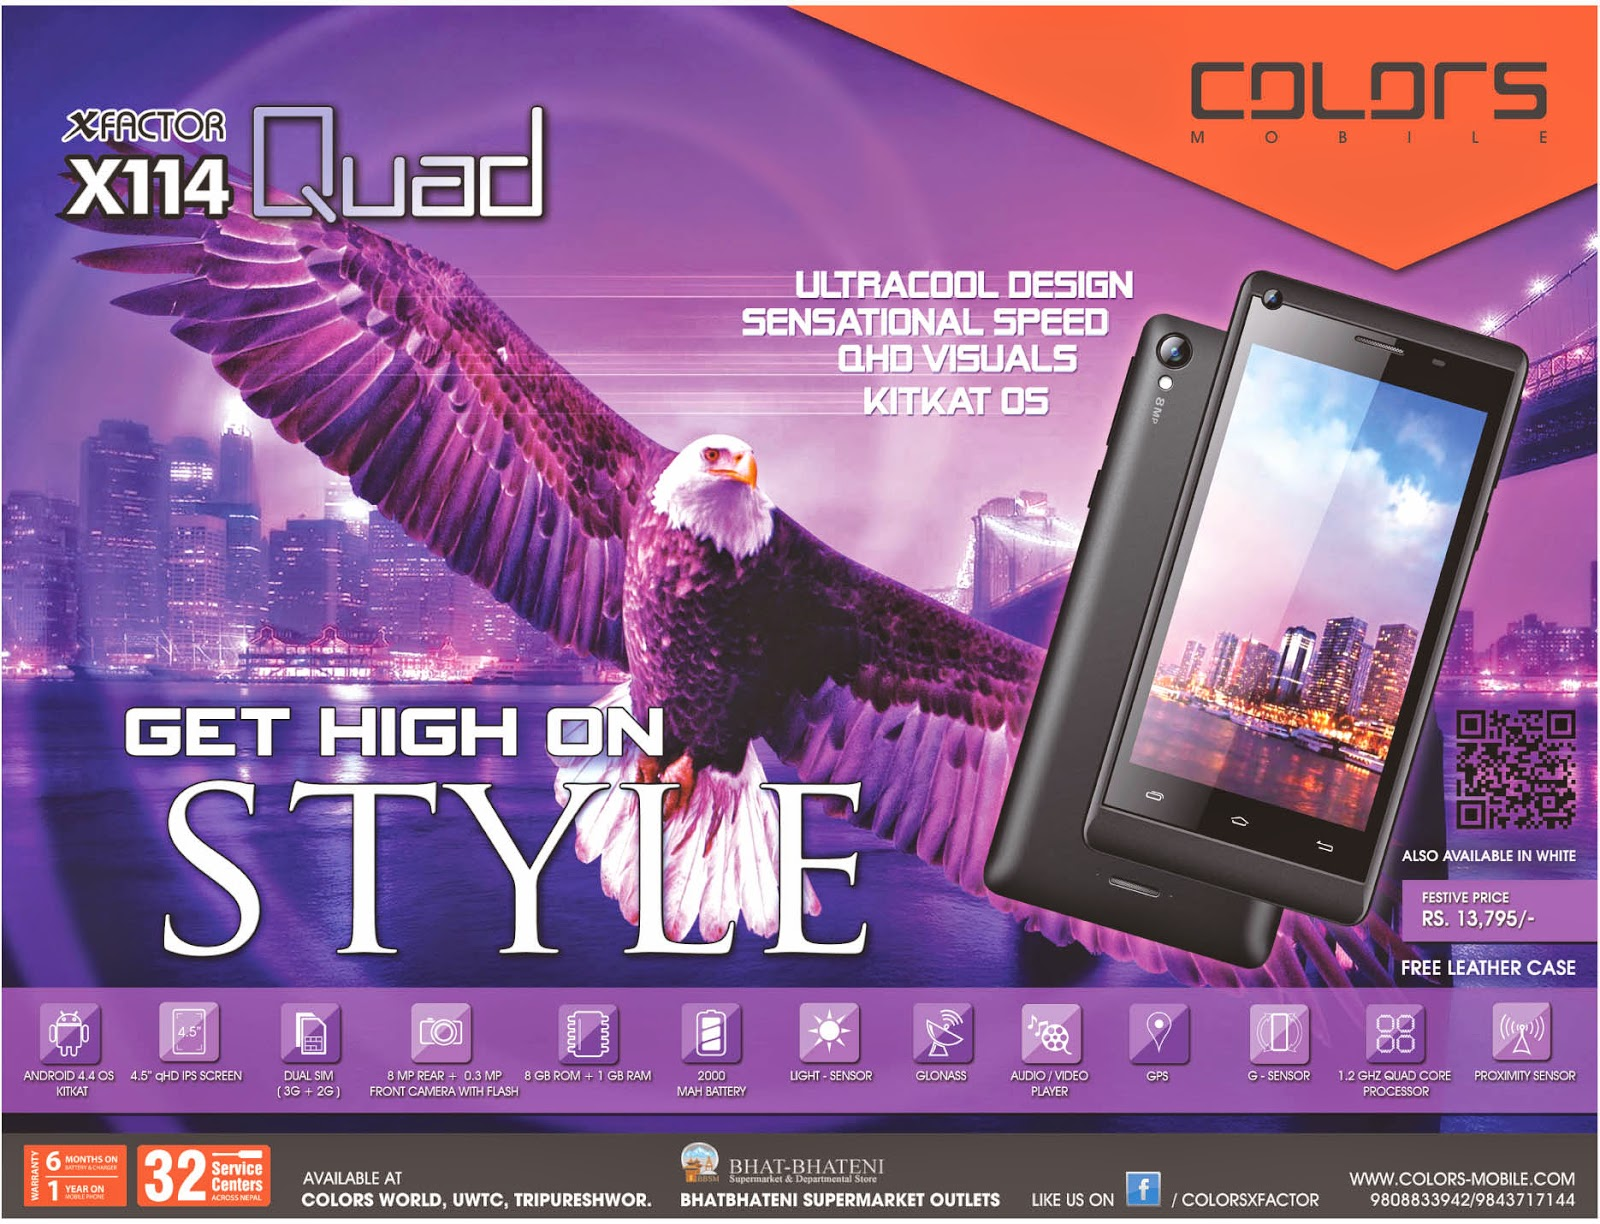 COLORS-XFACTOR-X114-Quad-Price-Nepal